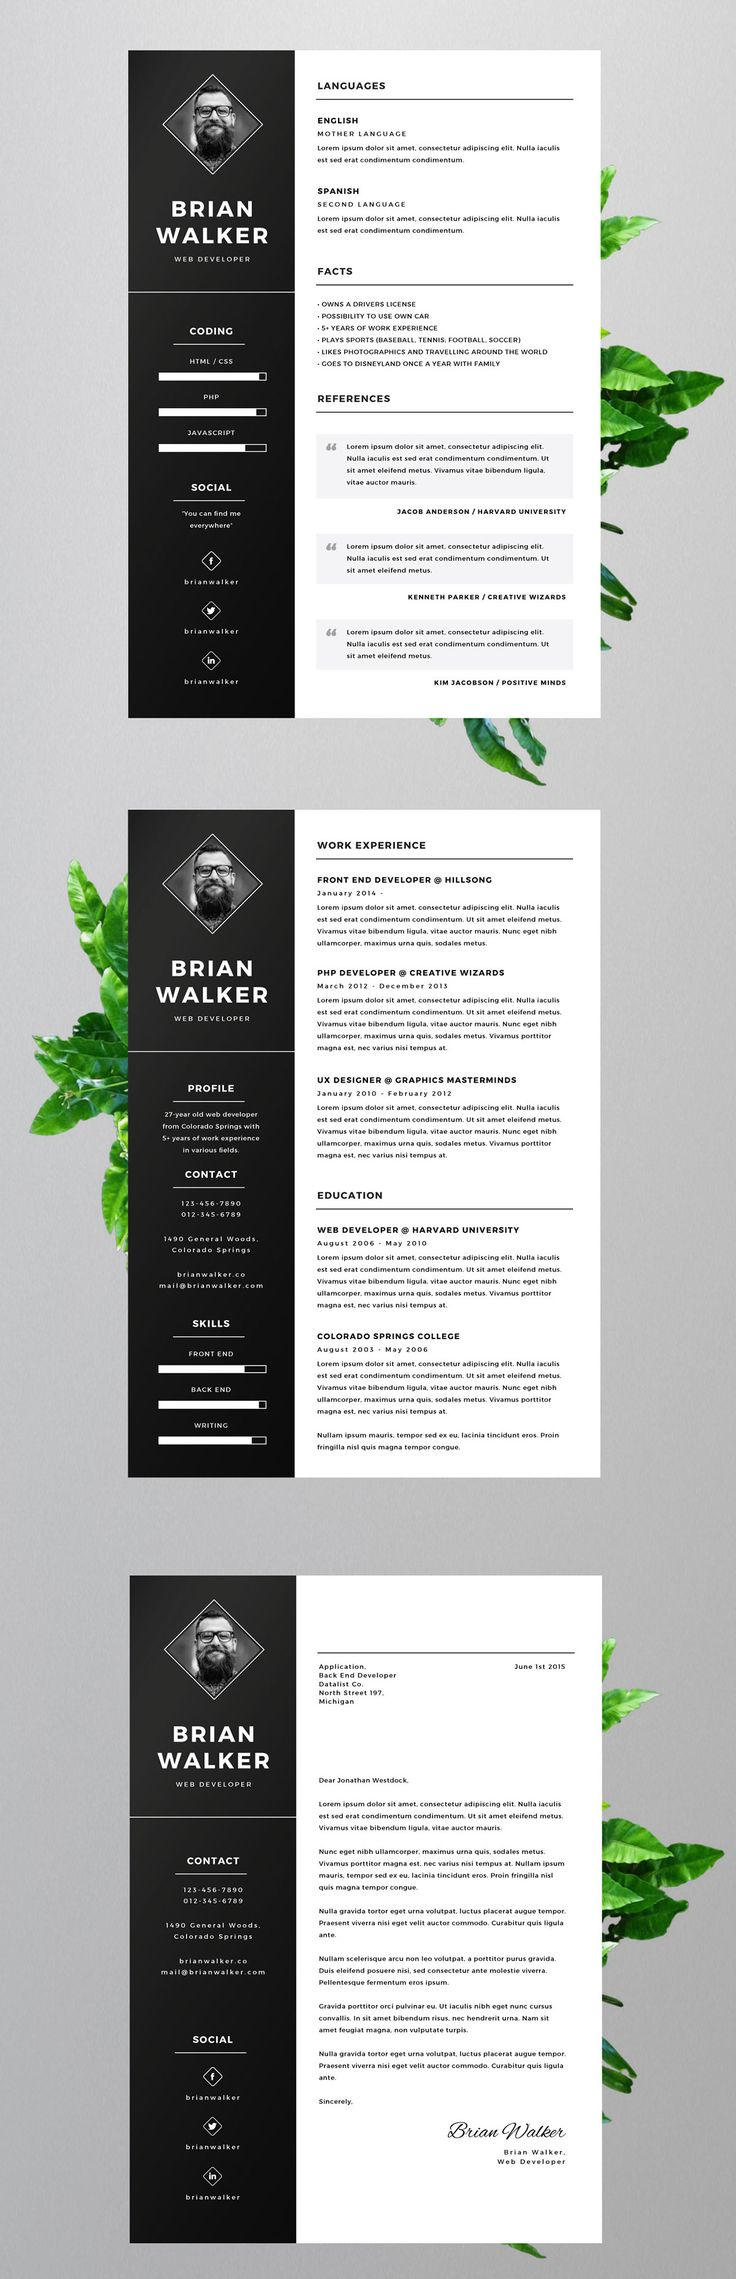 Free Resume Template For Word, Photoshop U0026 Illustrator  Free Word Resume Templates